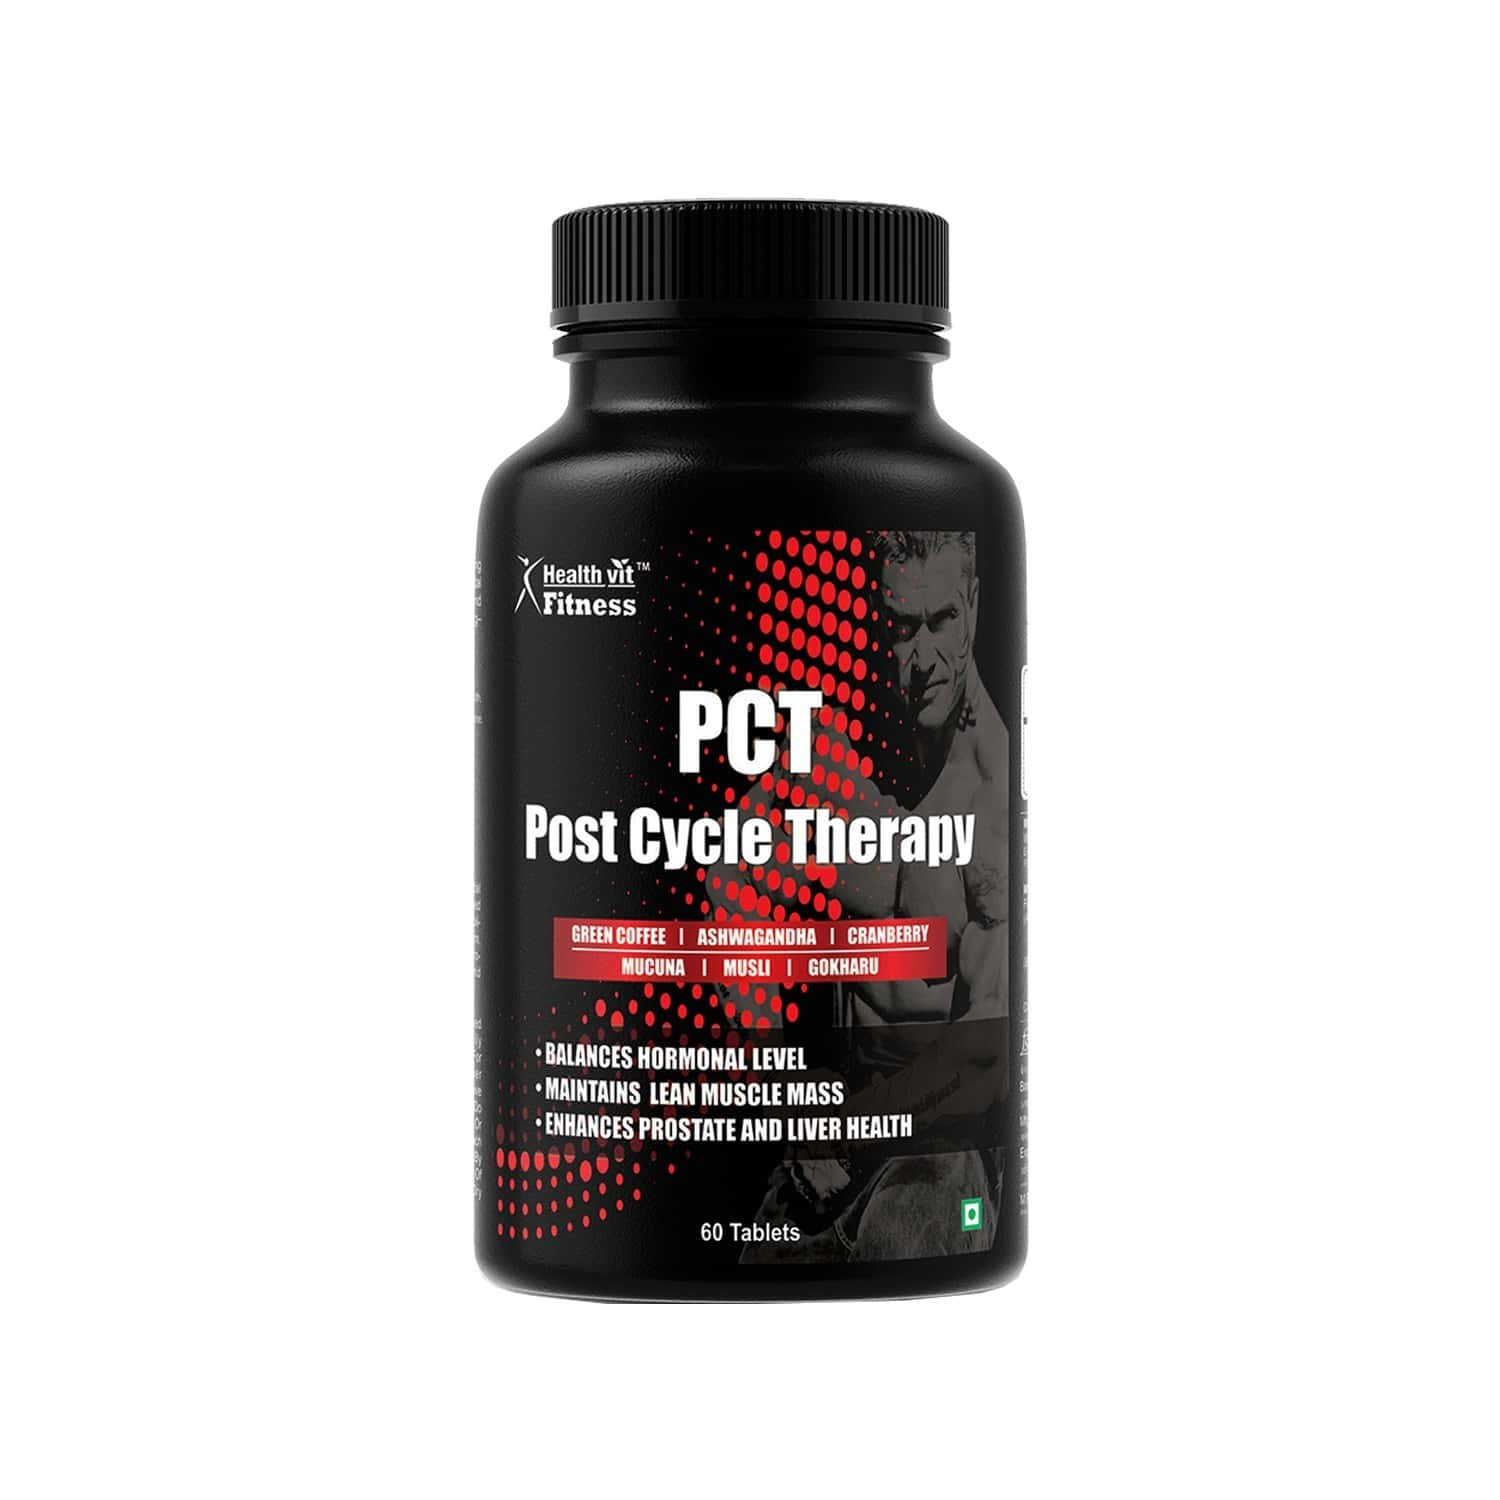 Healthvit Fitness Pct For Kidney Detox, Liver Detox & Testosterone Booster Post Cycle Therapy - 60 Tablets